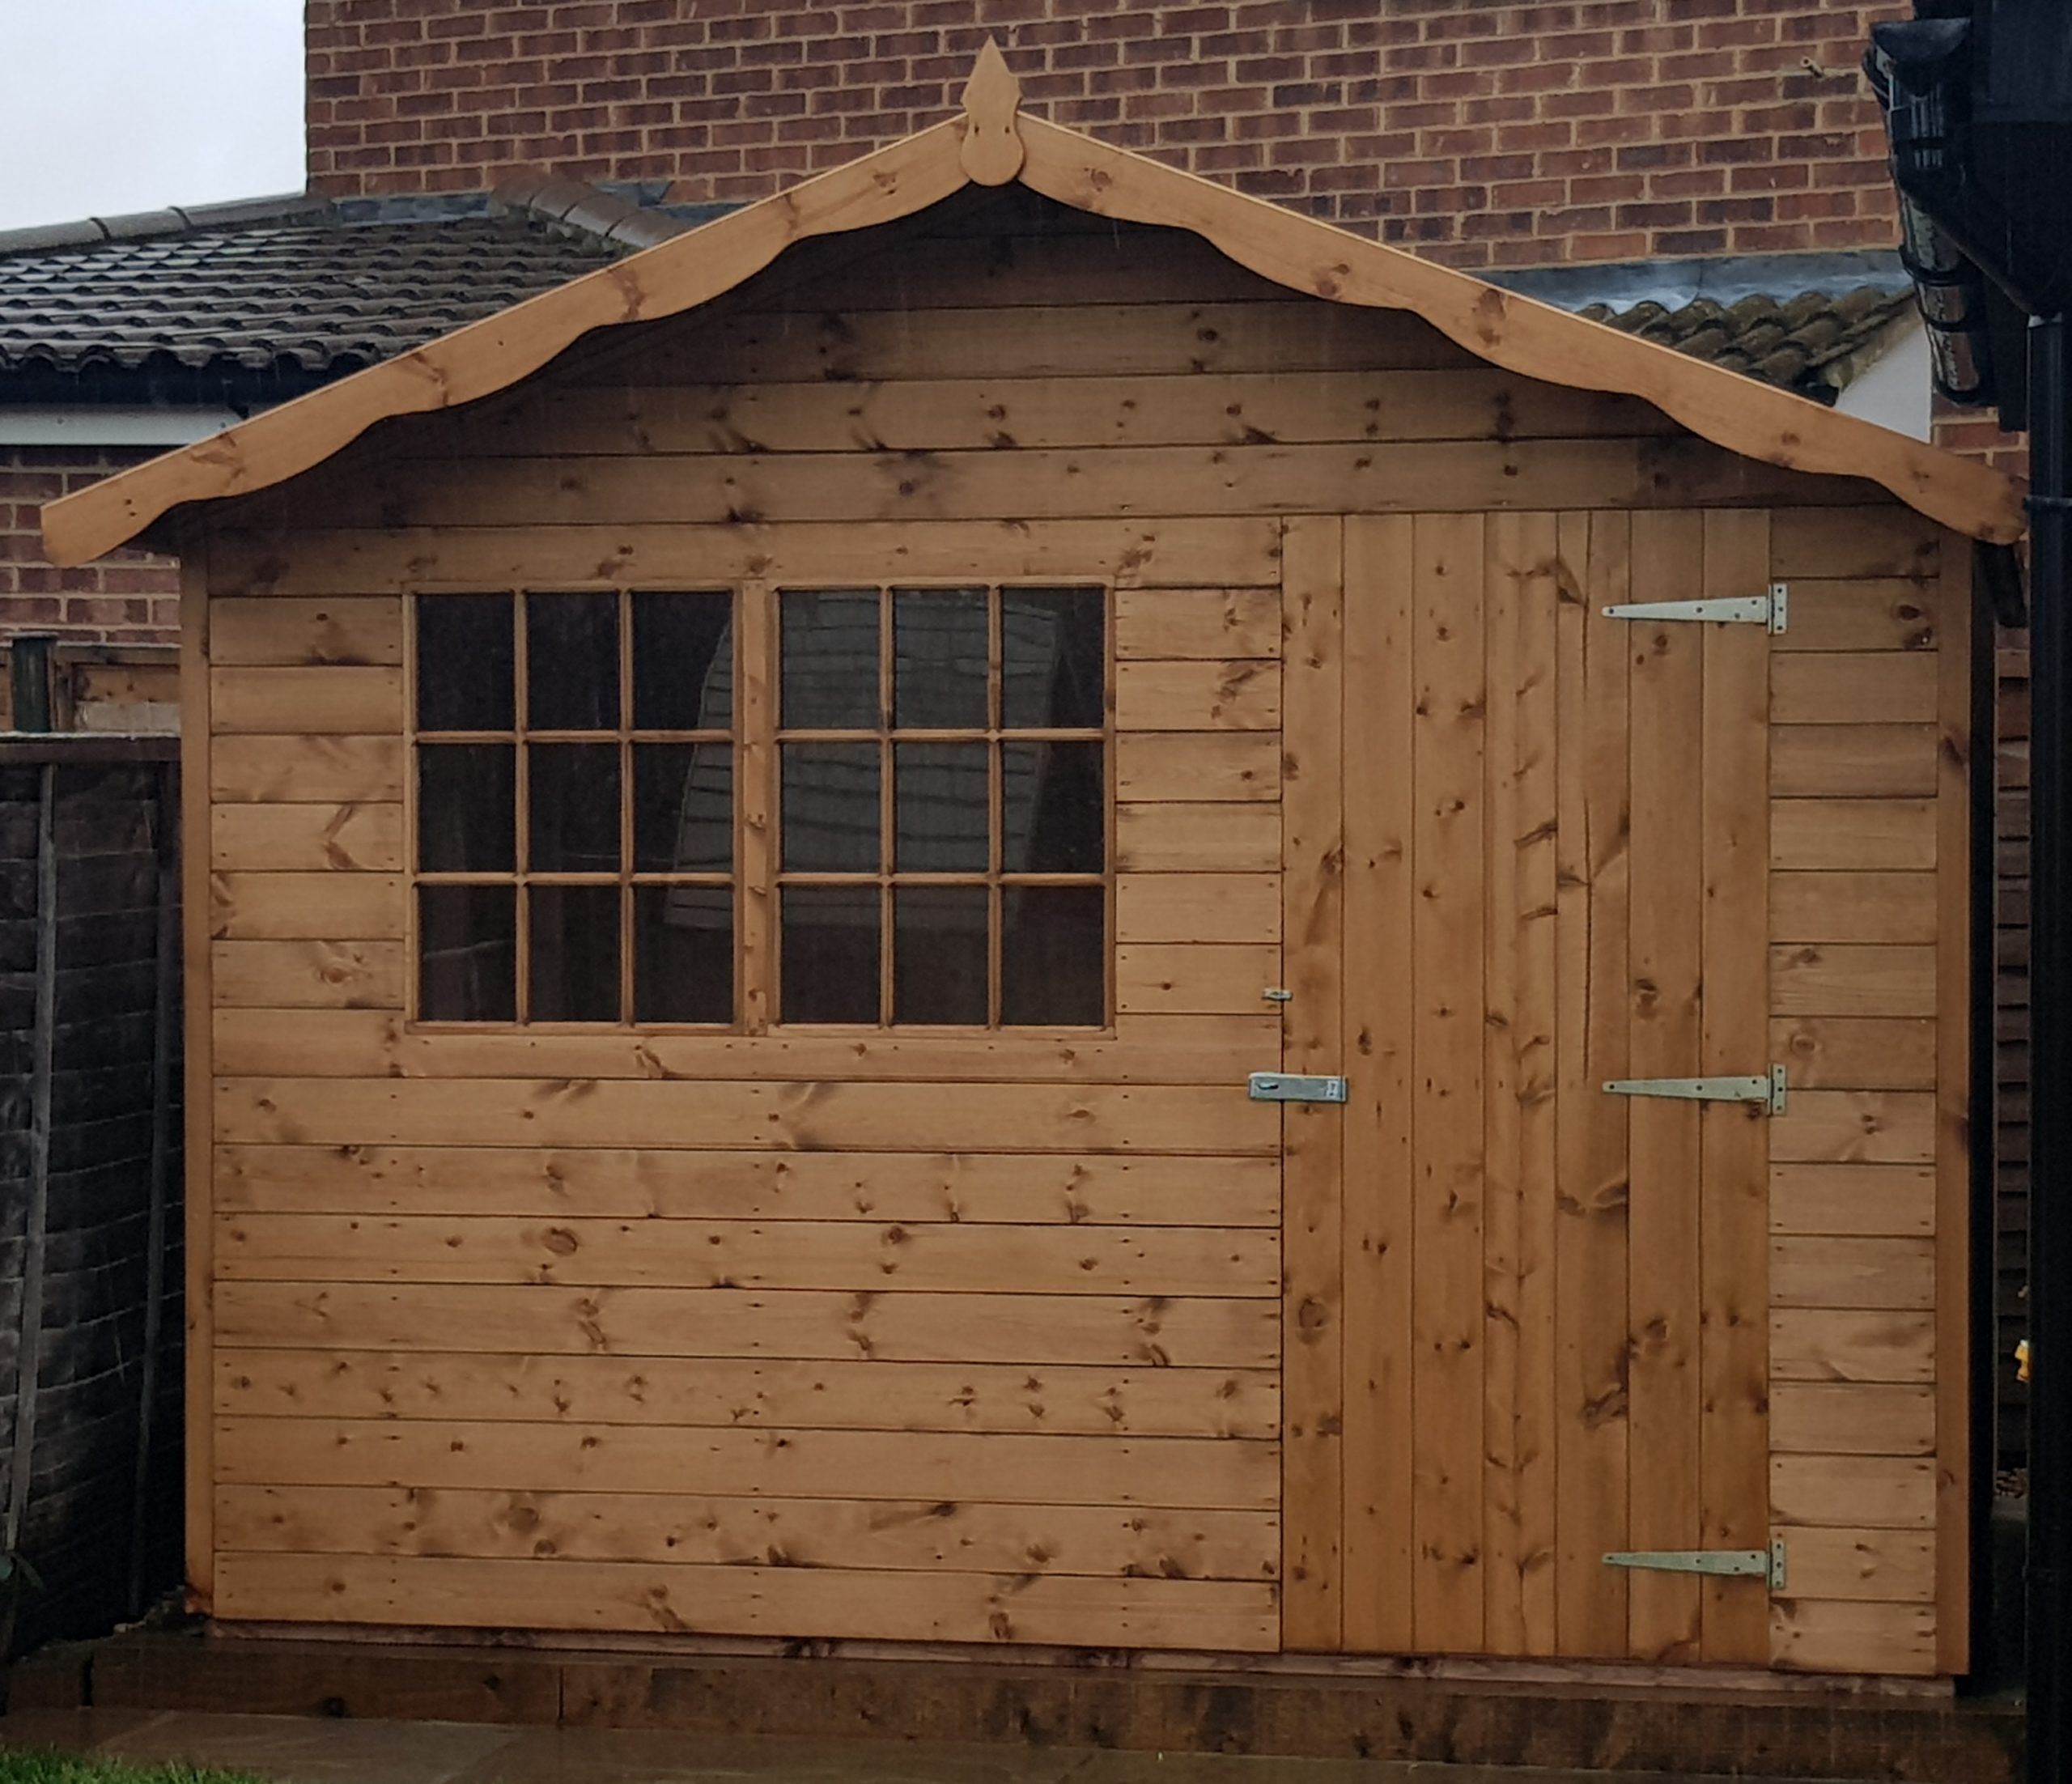 10 x 8 cabin style shed without window box and left hand door